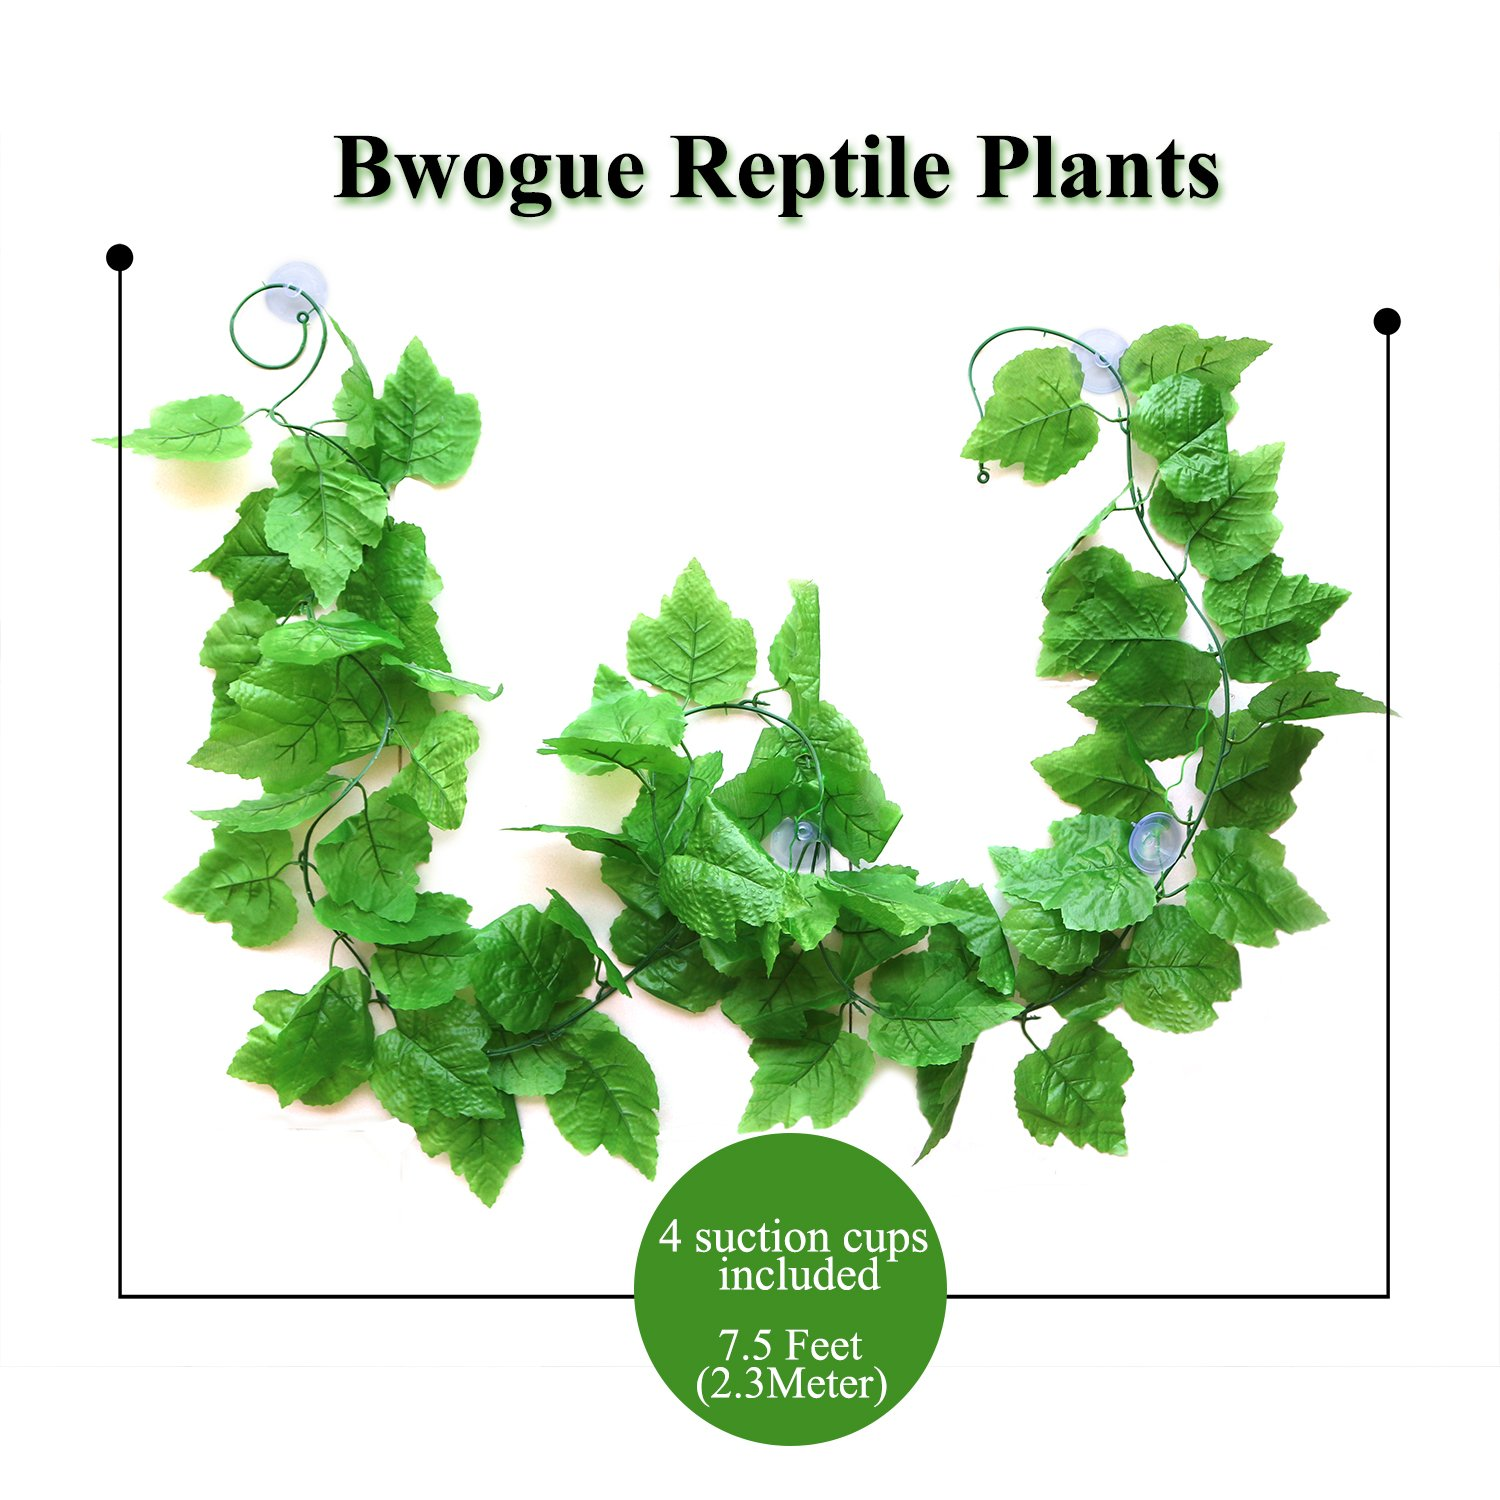 Amazoncom Bwogue Artificial Reptile Plants With Sunction Cups  Green